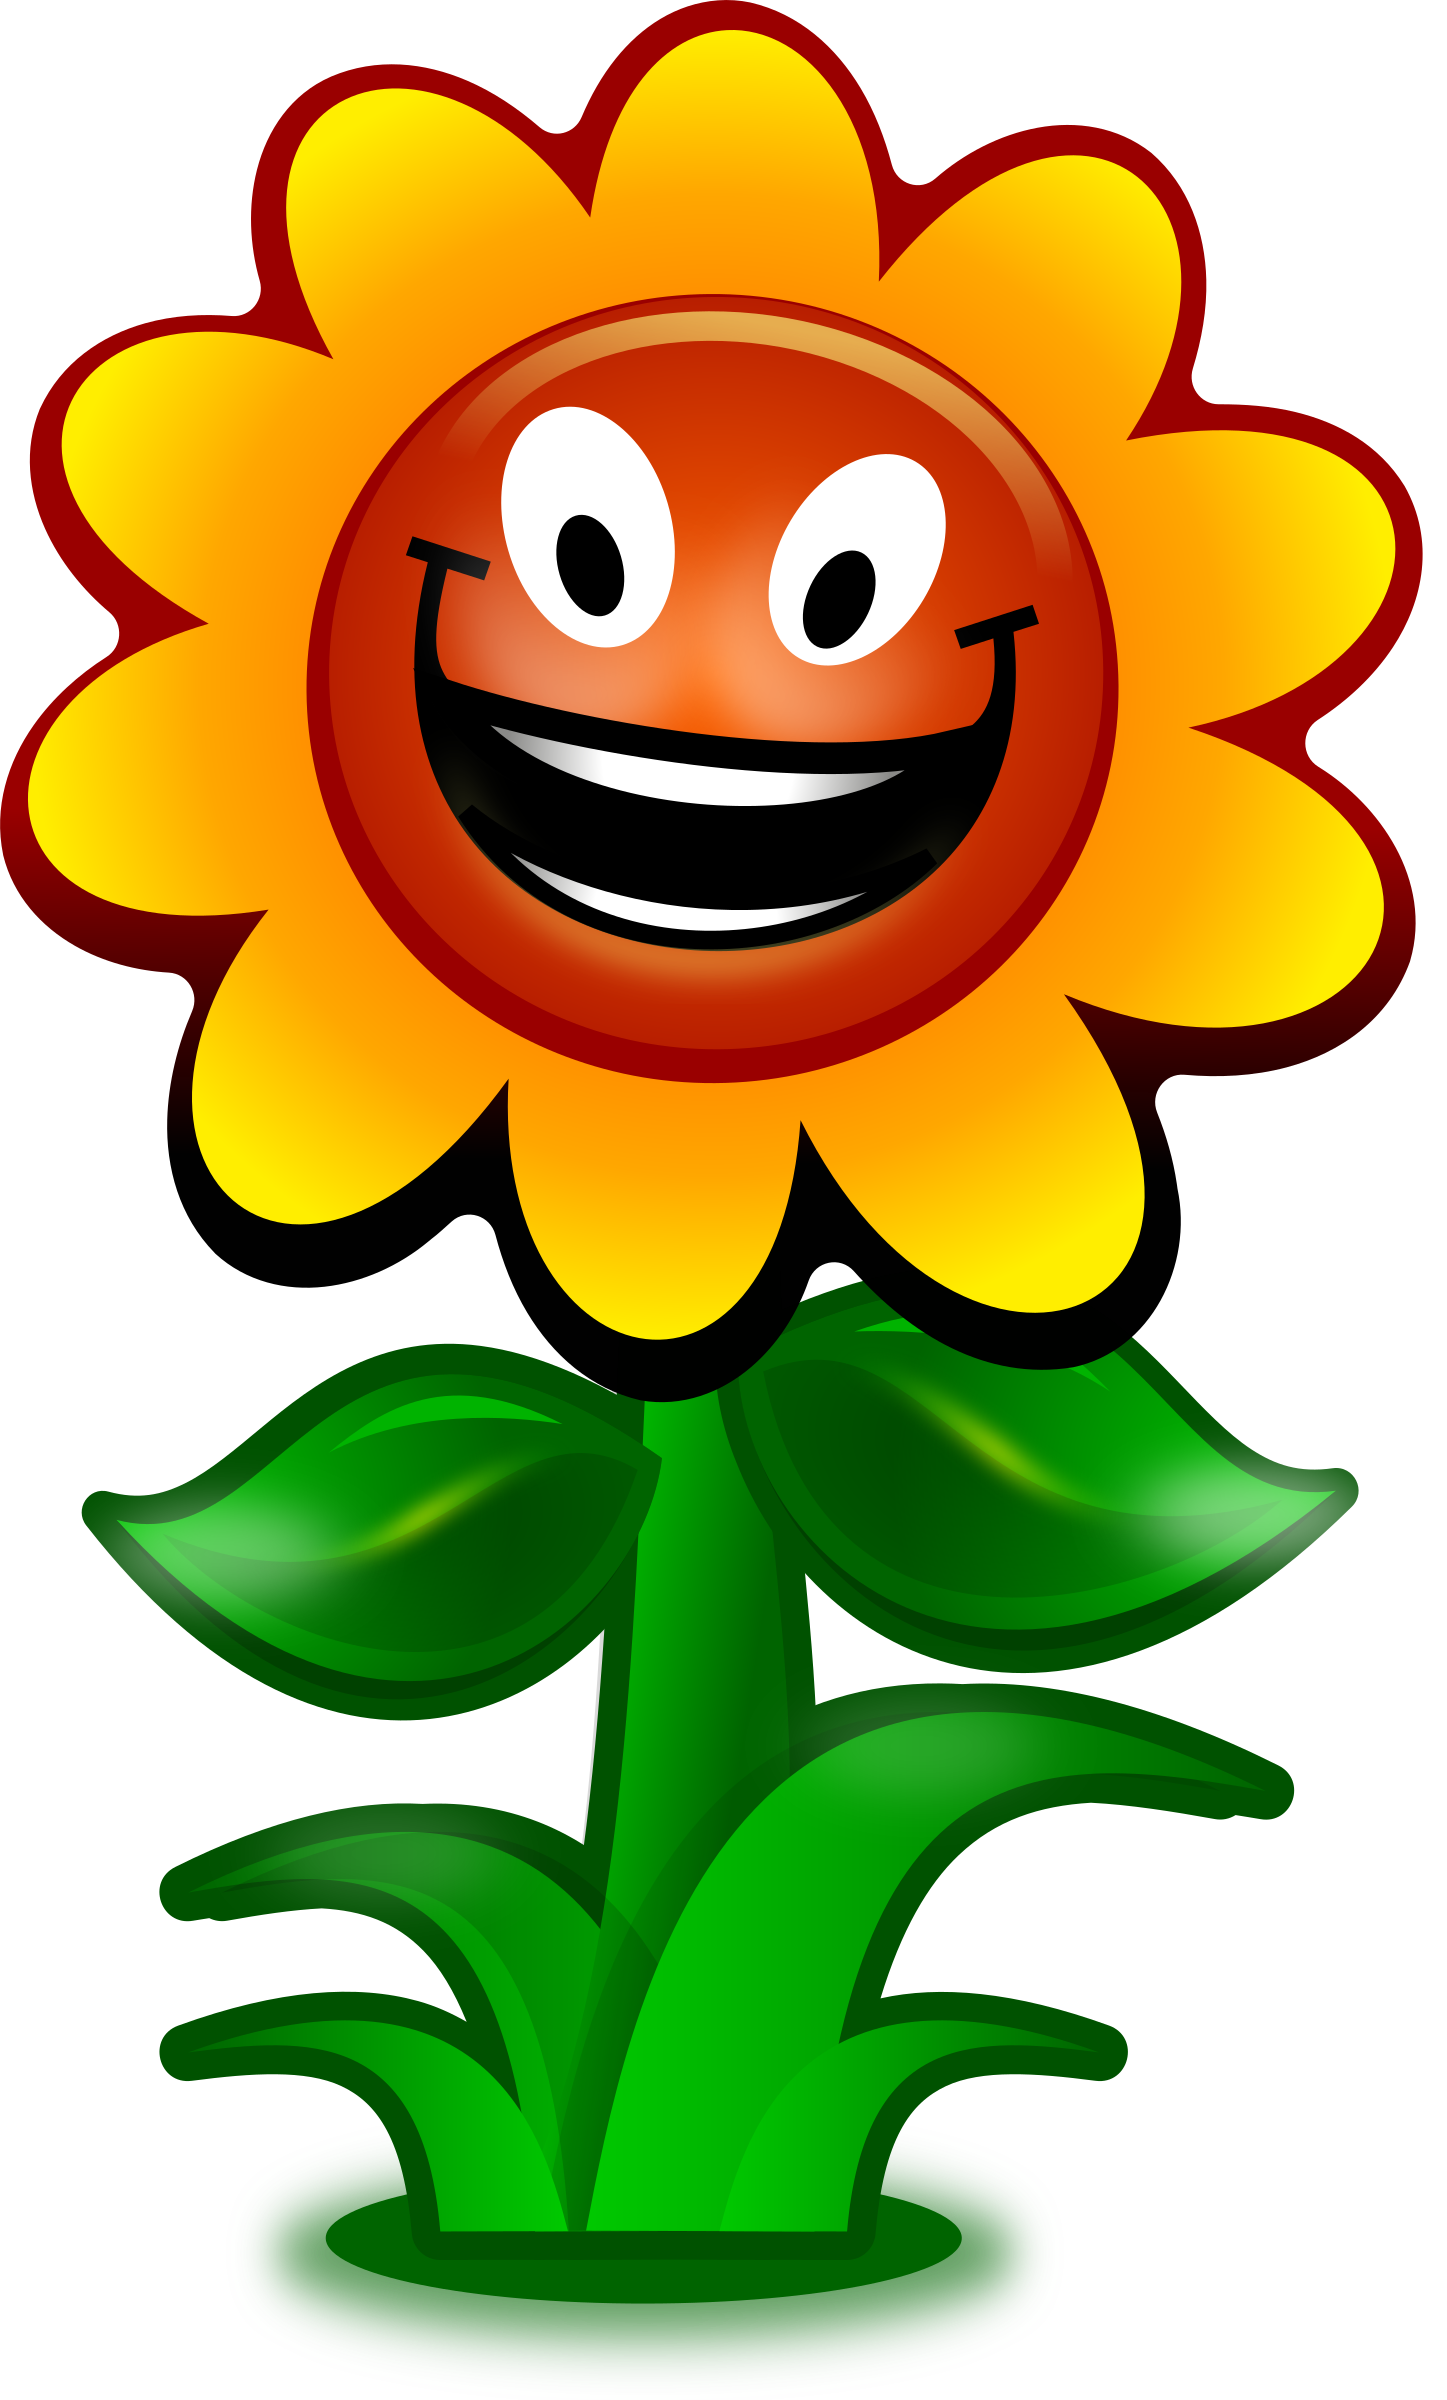 clipart cartoon flower game character rh openclipart org cartoon flower black and white clipart animated flower cartoon clip art